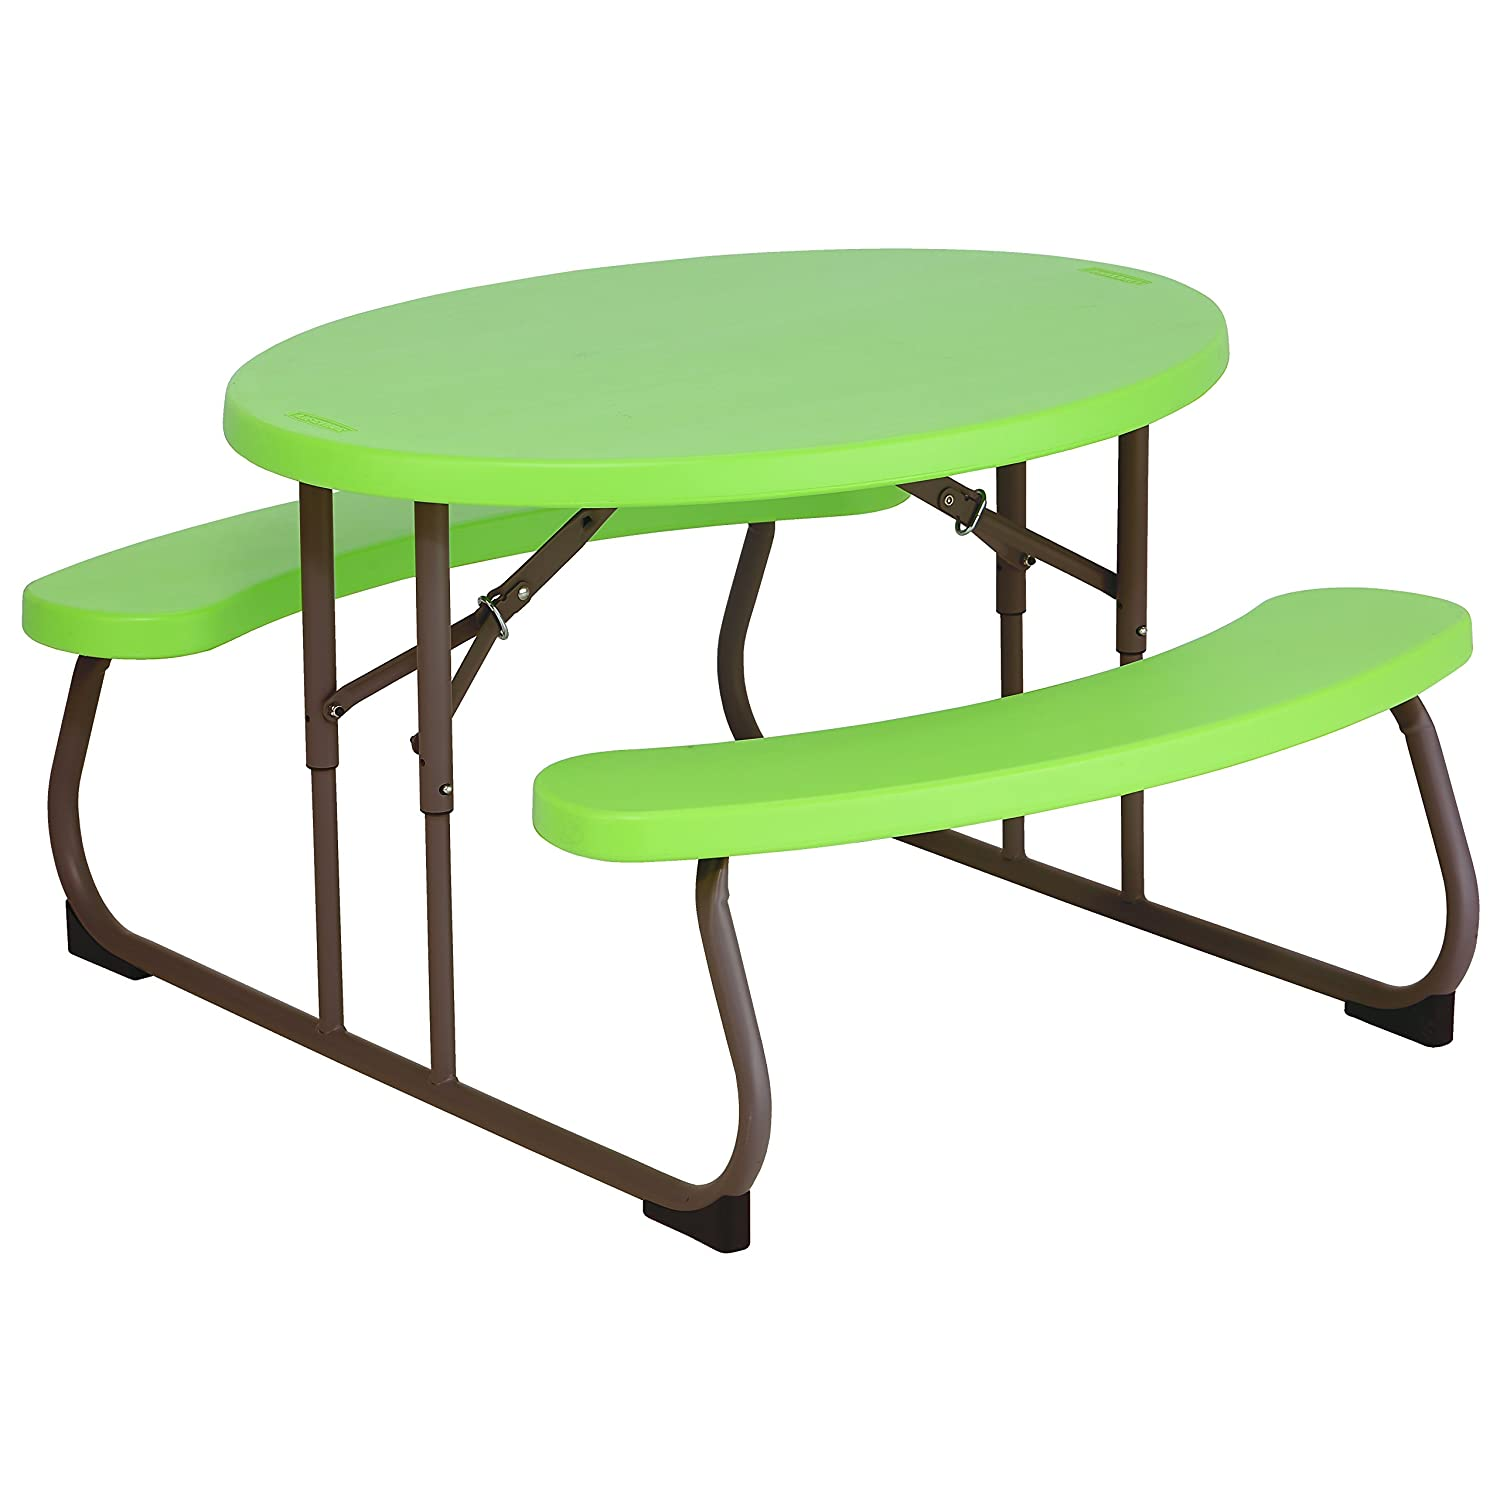 Attractive Amazon.com : Lifetime 60132 Childrenu0027s Oval Picnic Table, Lime Green :  Garden U0026 Outdoor